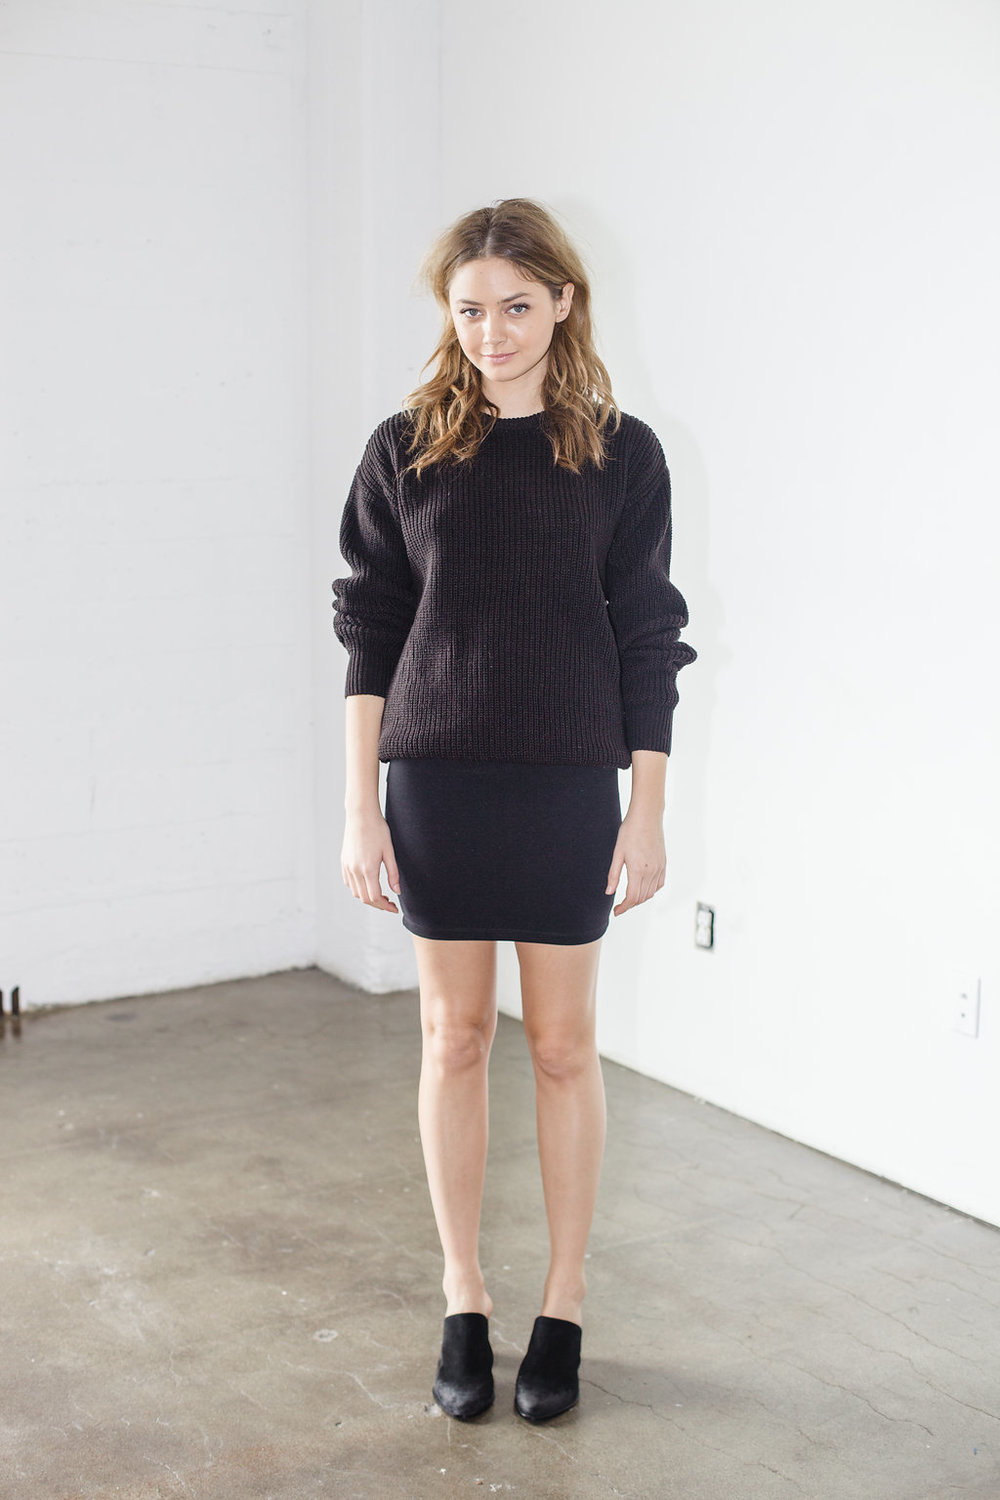 Oversized Boyfriend Sweater Pictures to Pin on Pinterest - Clanek